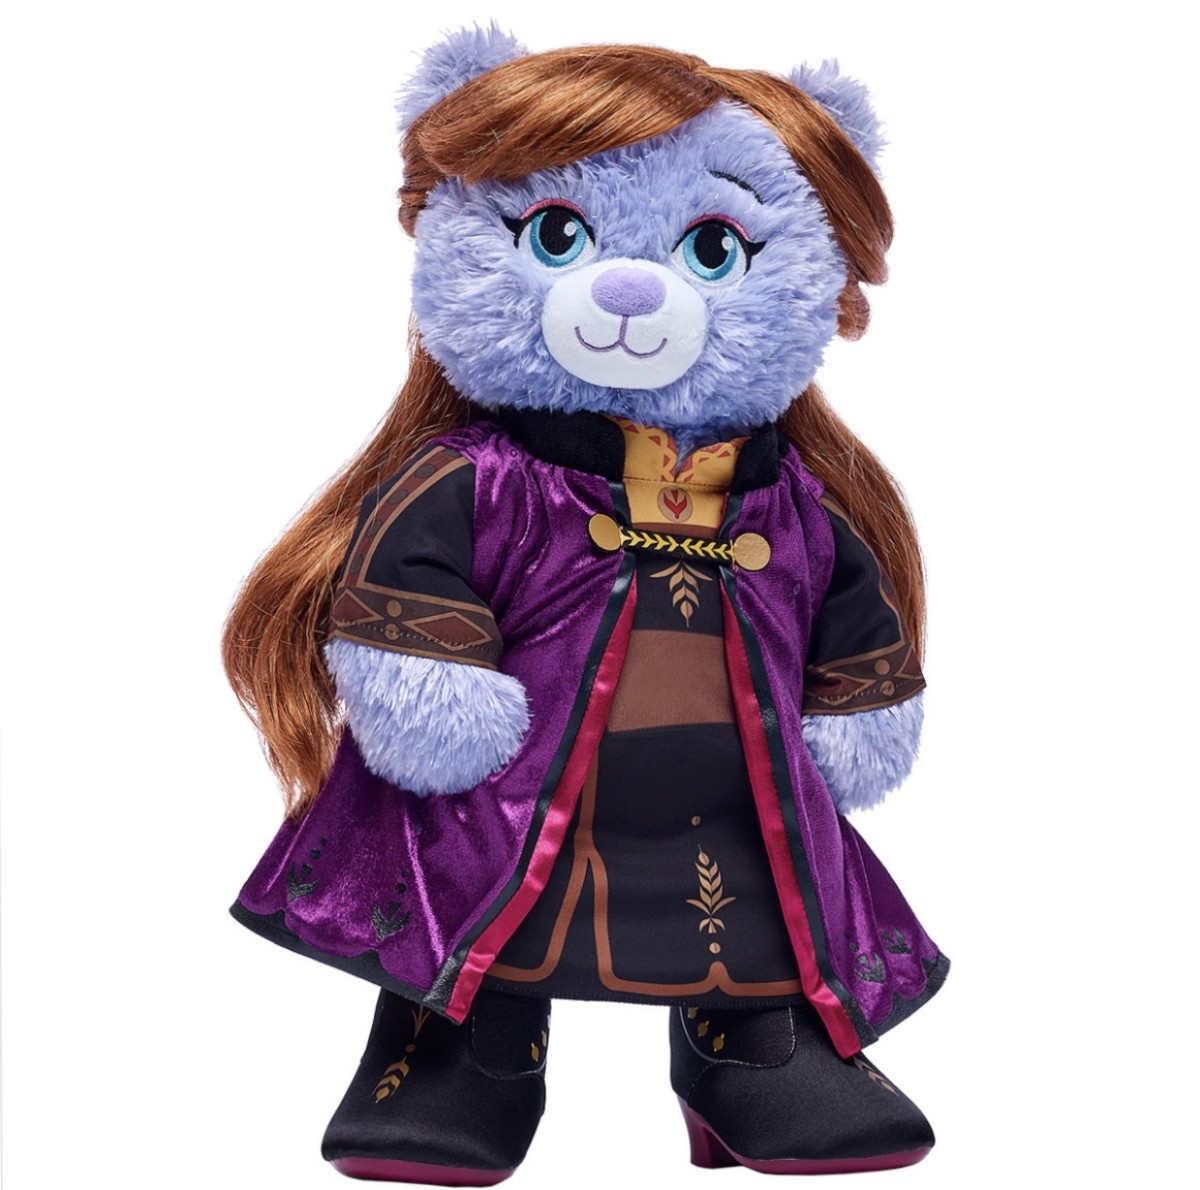 New Frozen 2 Collection at Build-A-Bear Workshop 6